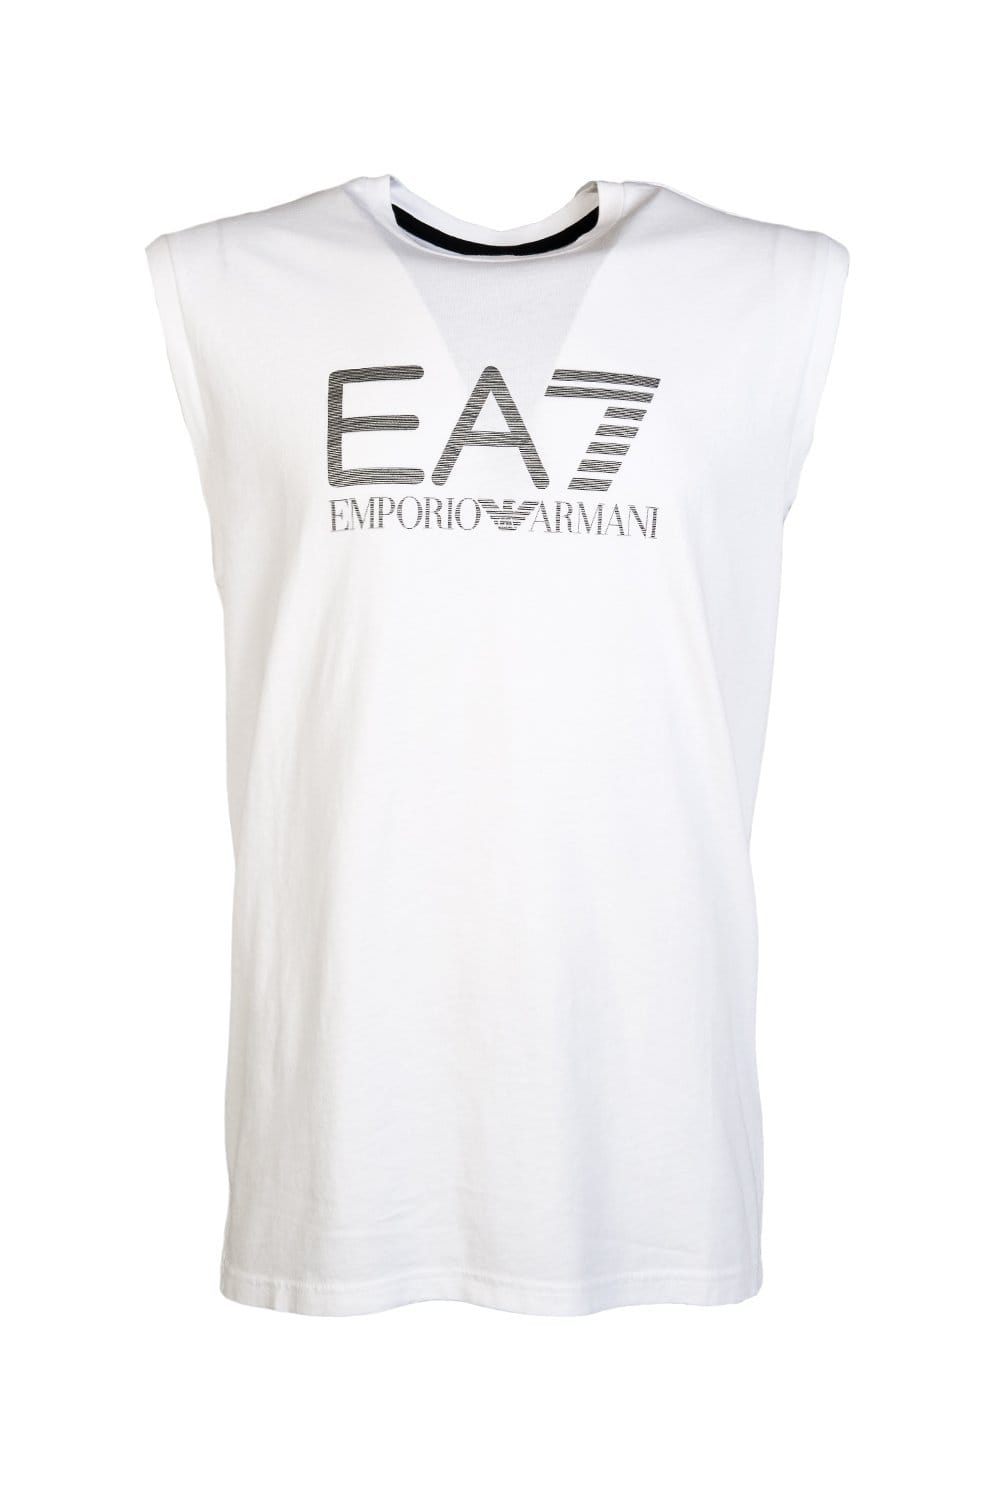 Ea7 t shirt white - Ea7 By Emporio Armani Sleeveless T Shirt In White Red And Navy Blue 2730965p237 Ea7 Emporio Armani From Sage Clothing Uk